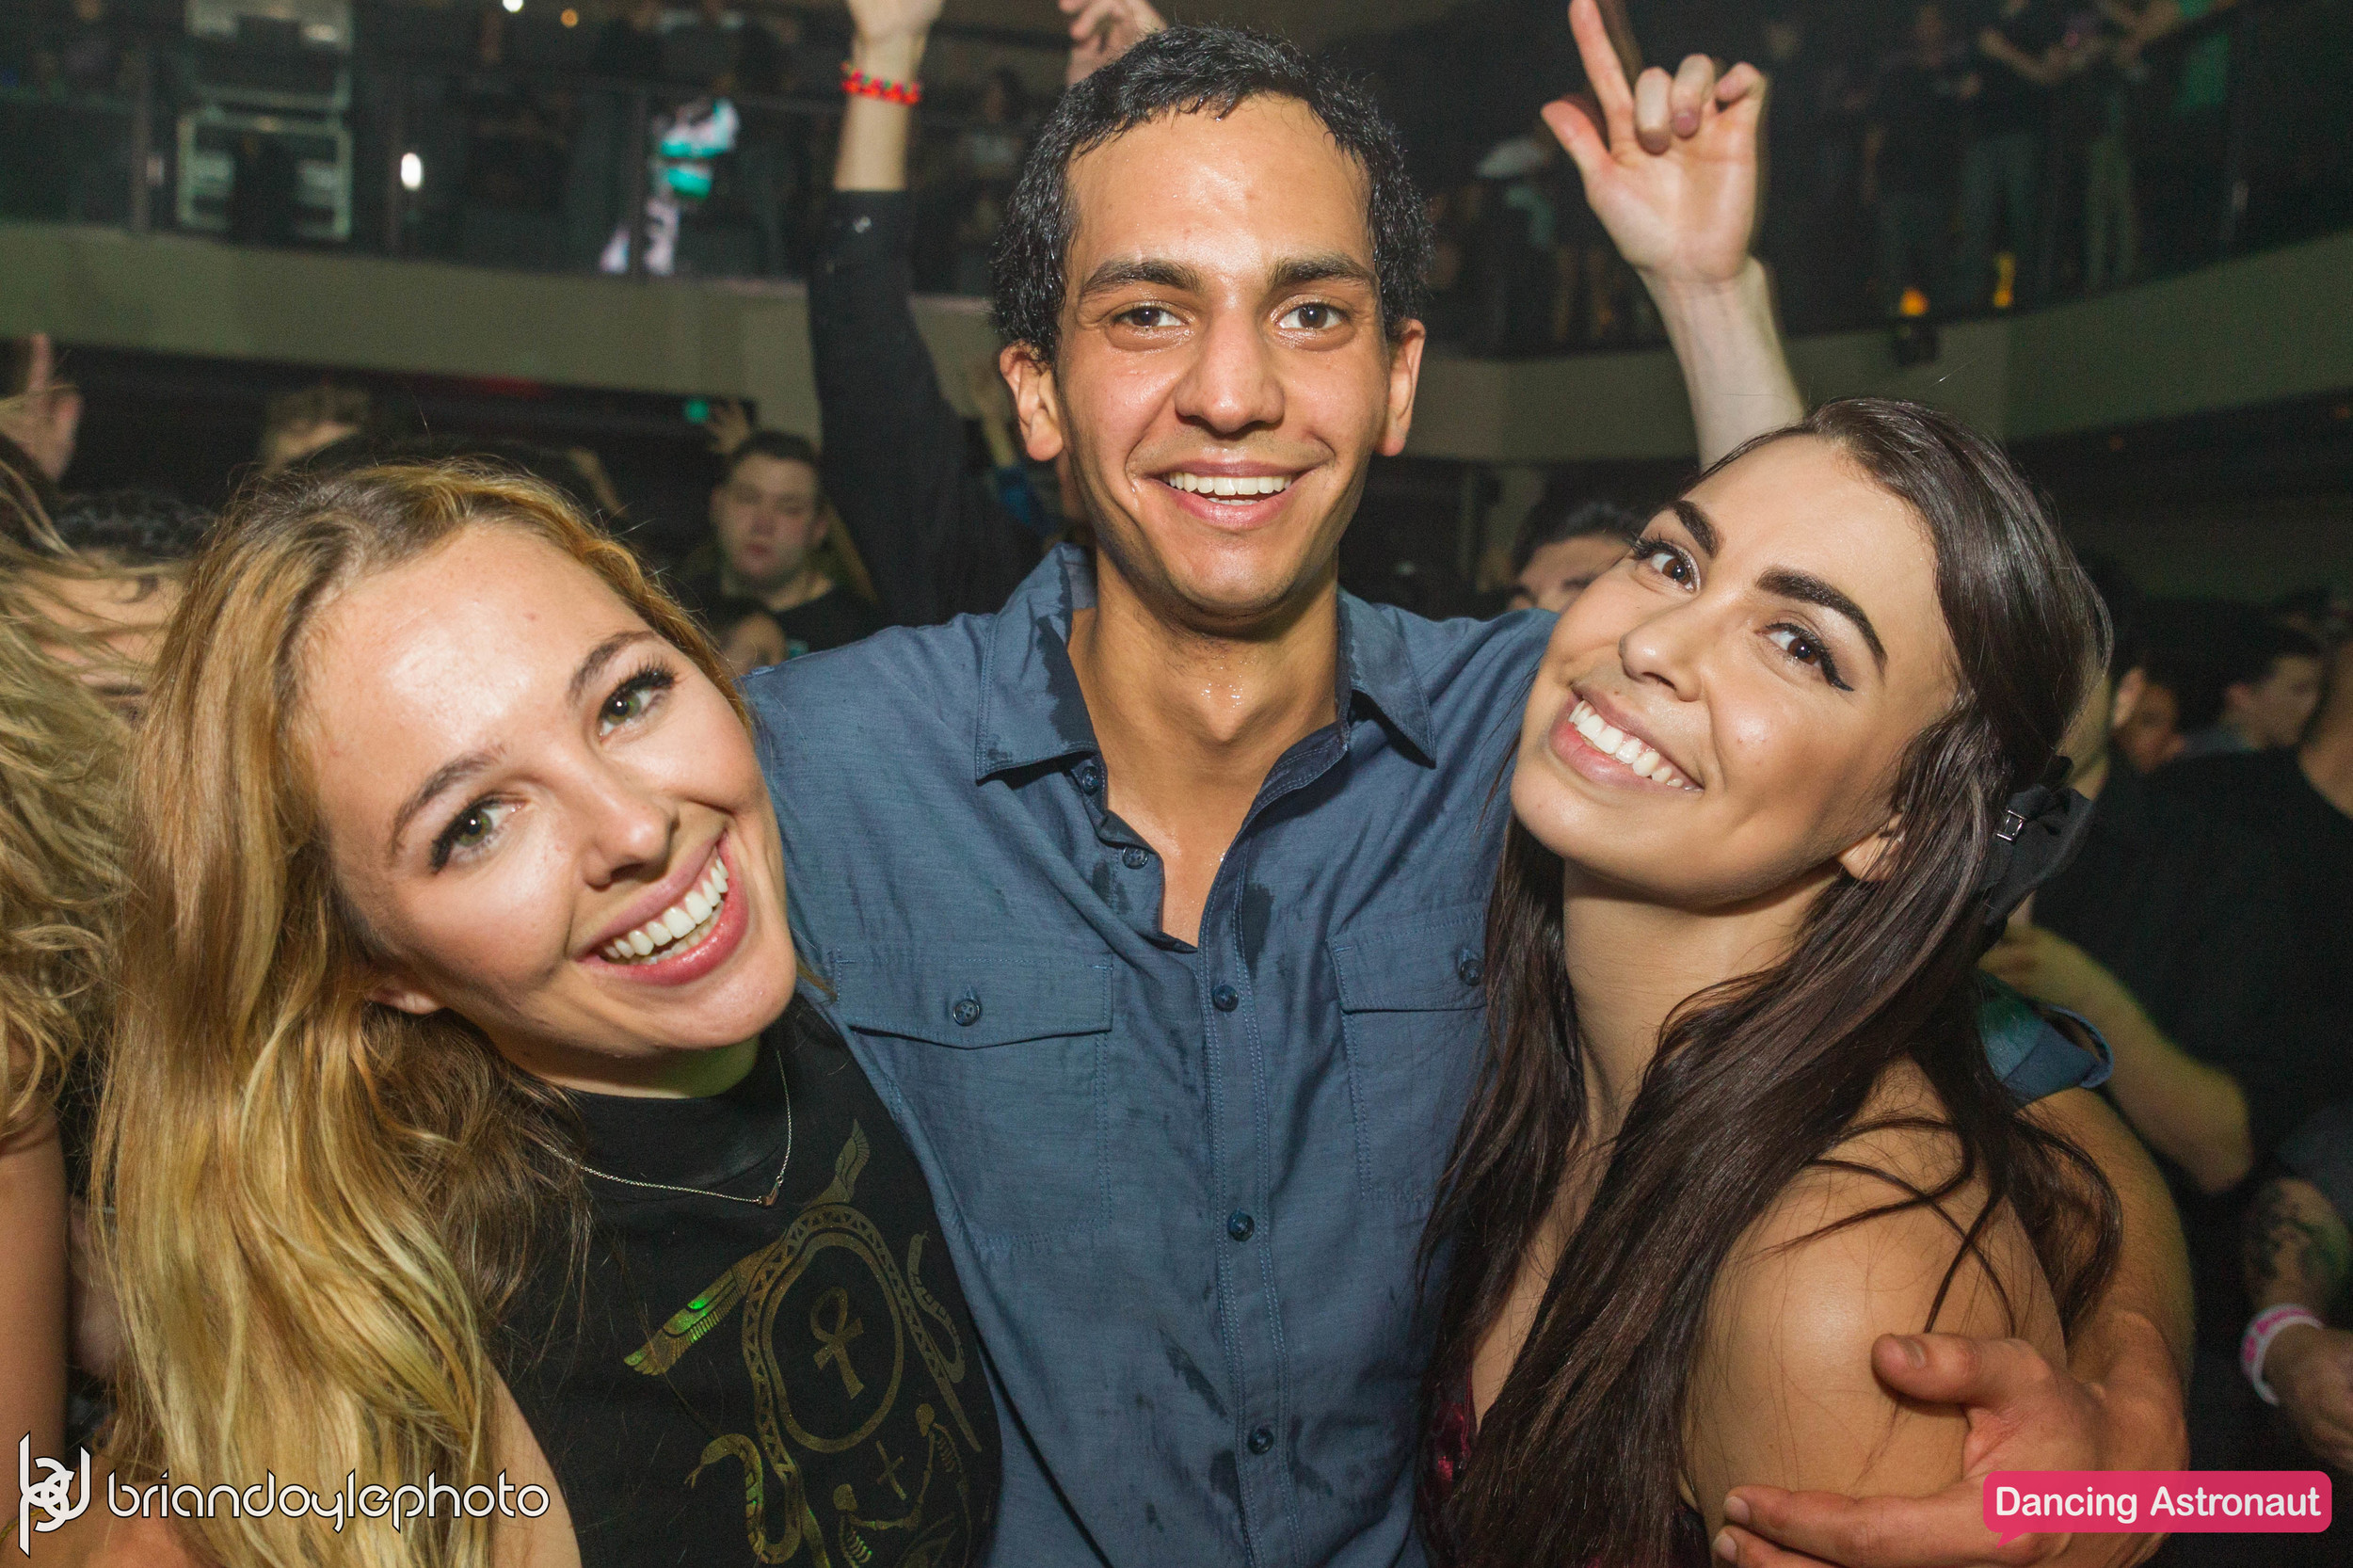 Datsik Ninja Nation Tour at Exchange LA 15.03.2015-41.jpg